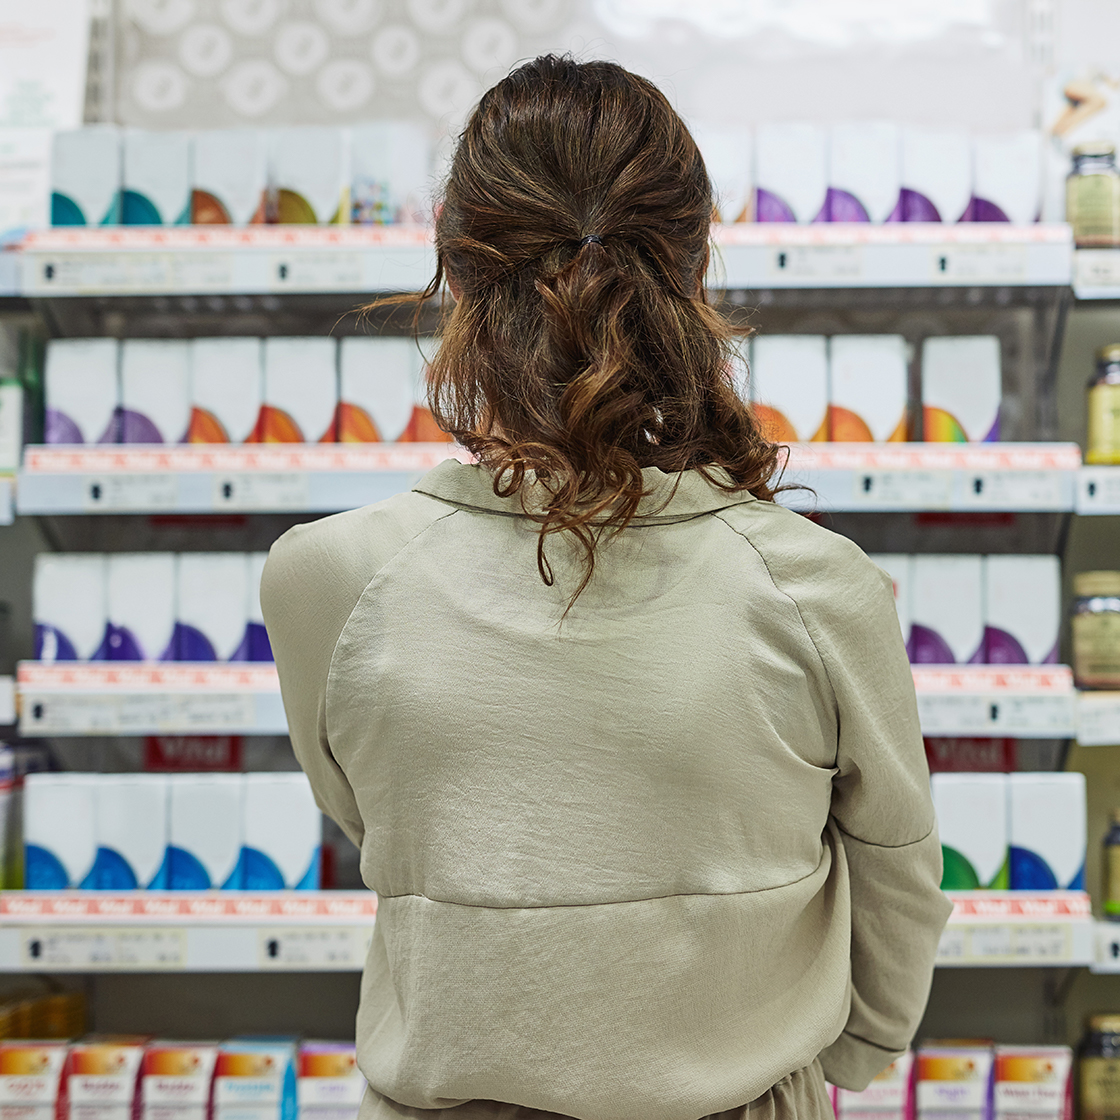 patient-centred packaging